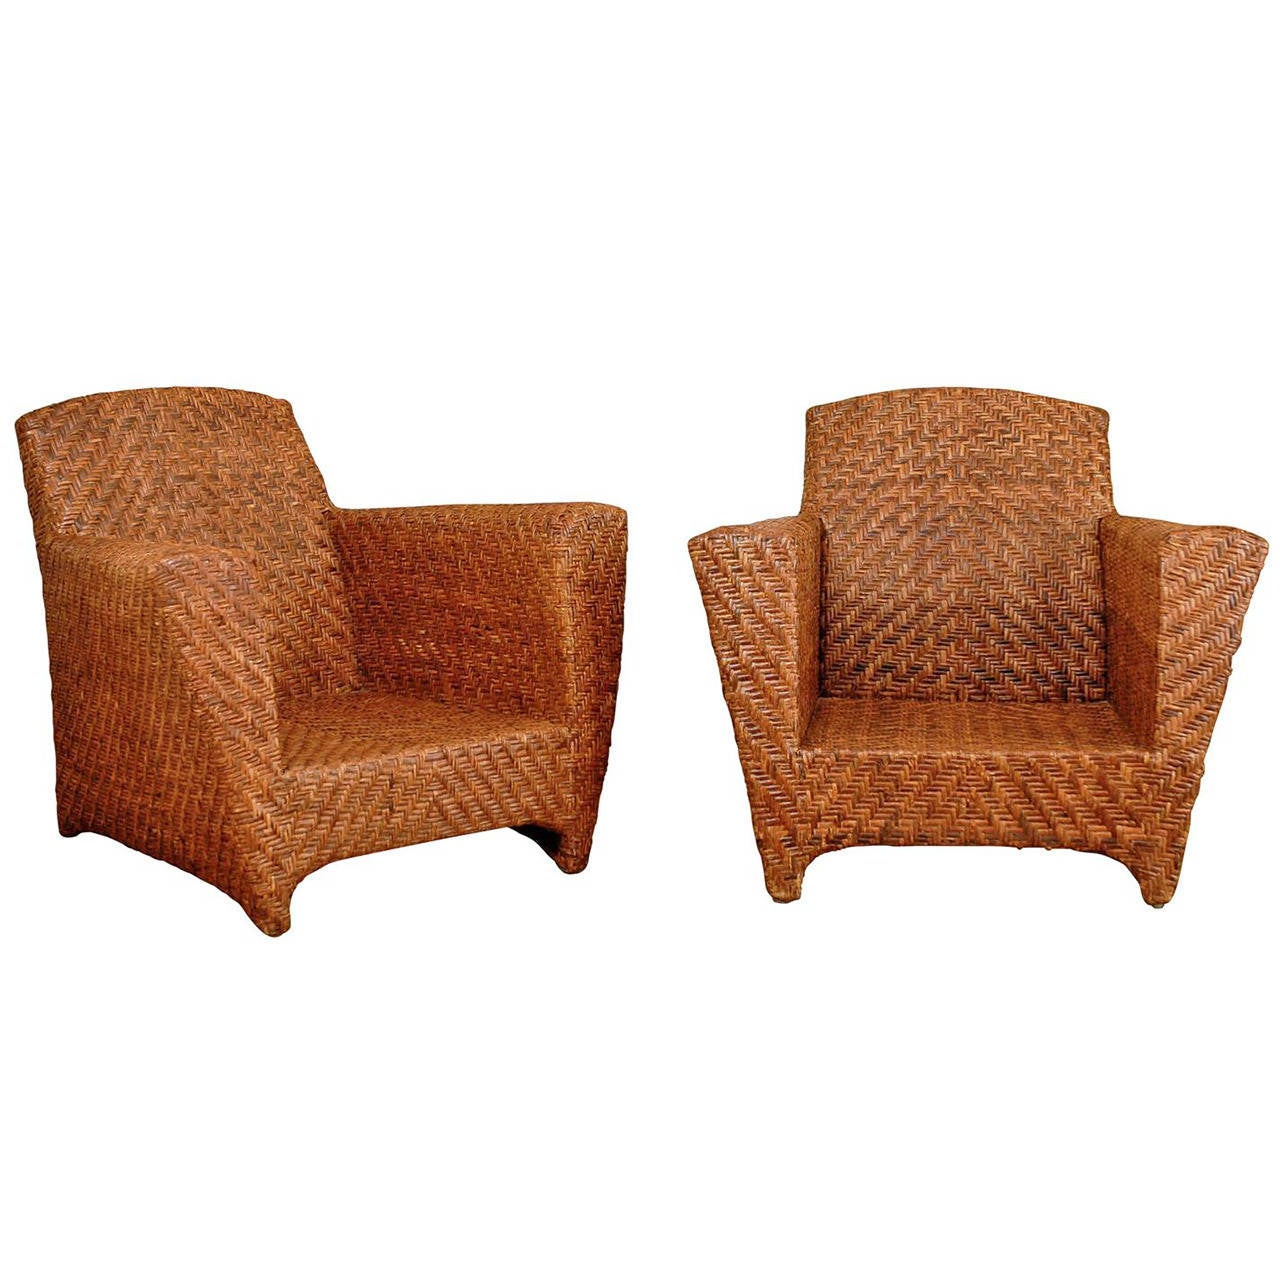 handsome pair of vintage rattan club chairs for sale at 1stdibs. Black Bedroom Furniture Sets. Home Design Ideas